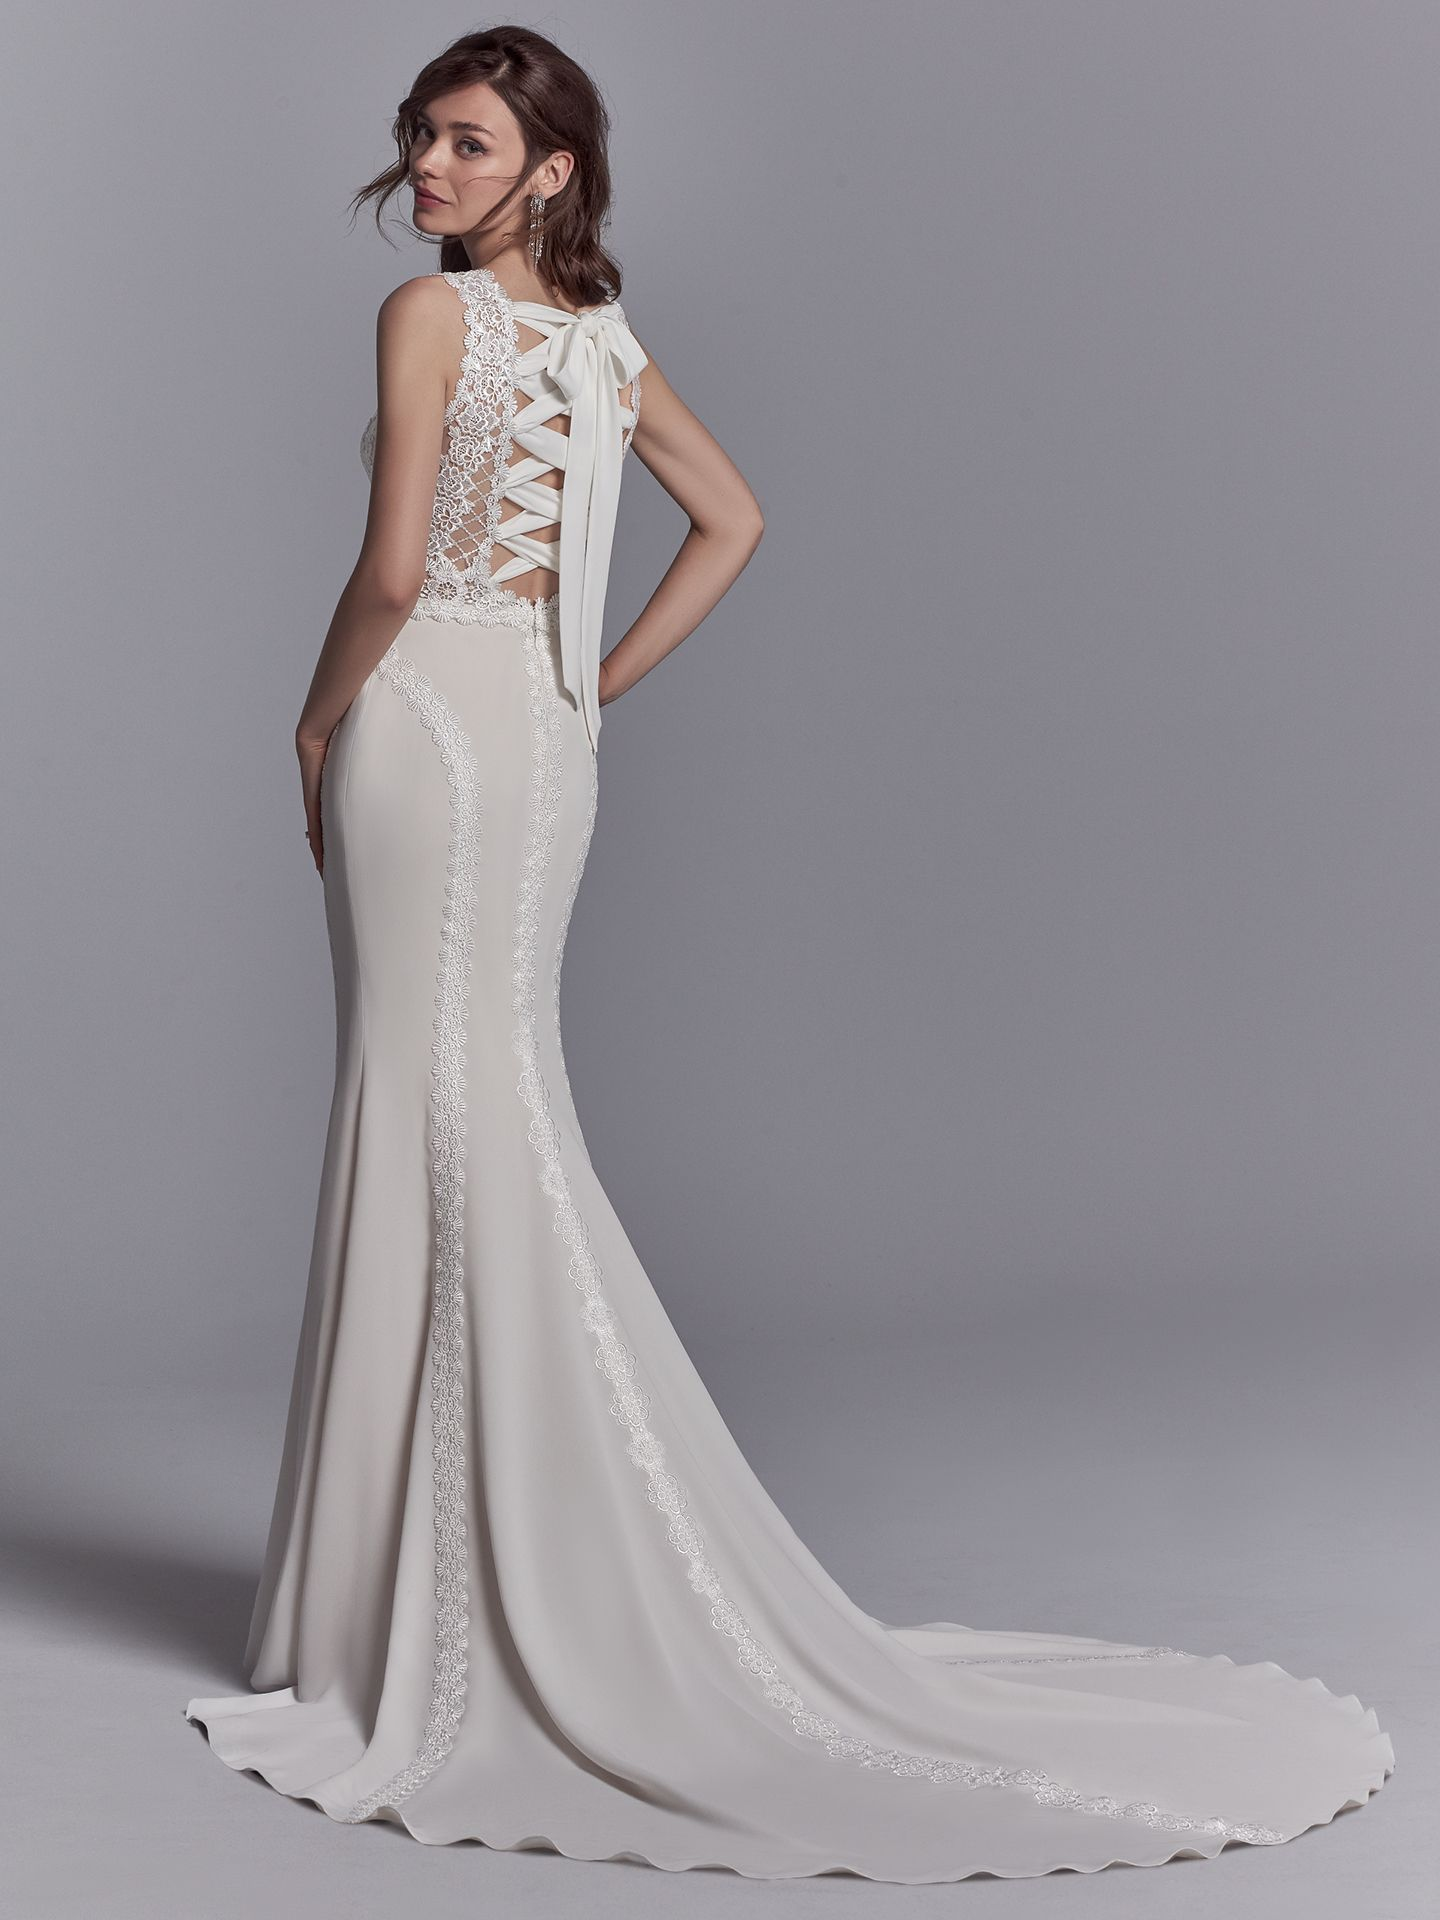 The Barrington wedding dress features an inverted lace-up corset detail topped with a bow. - The Latest Wedding Dress Trends for Engagement Season 2018